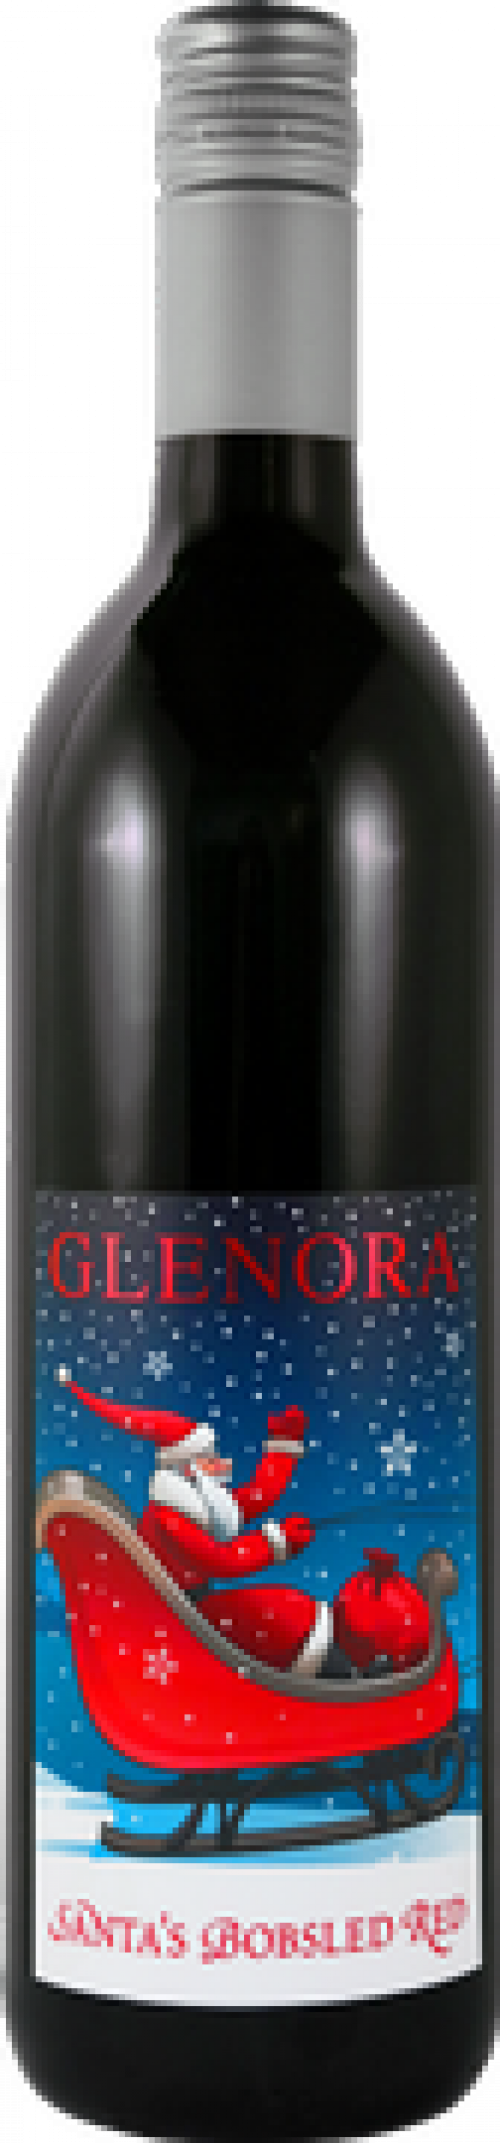 Glenora Santa's Bobsled Red 750ml NV